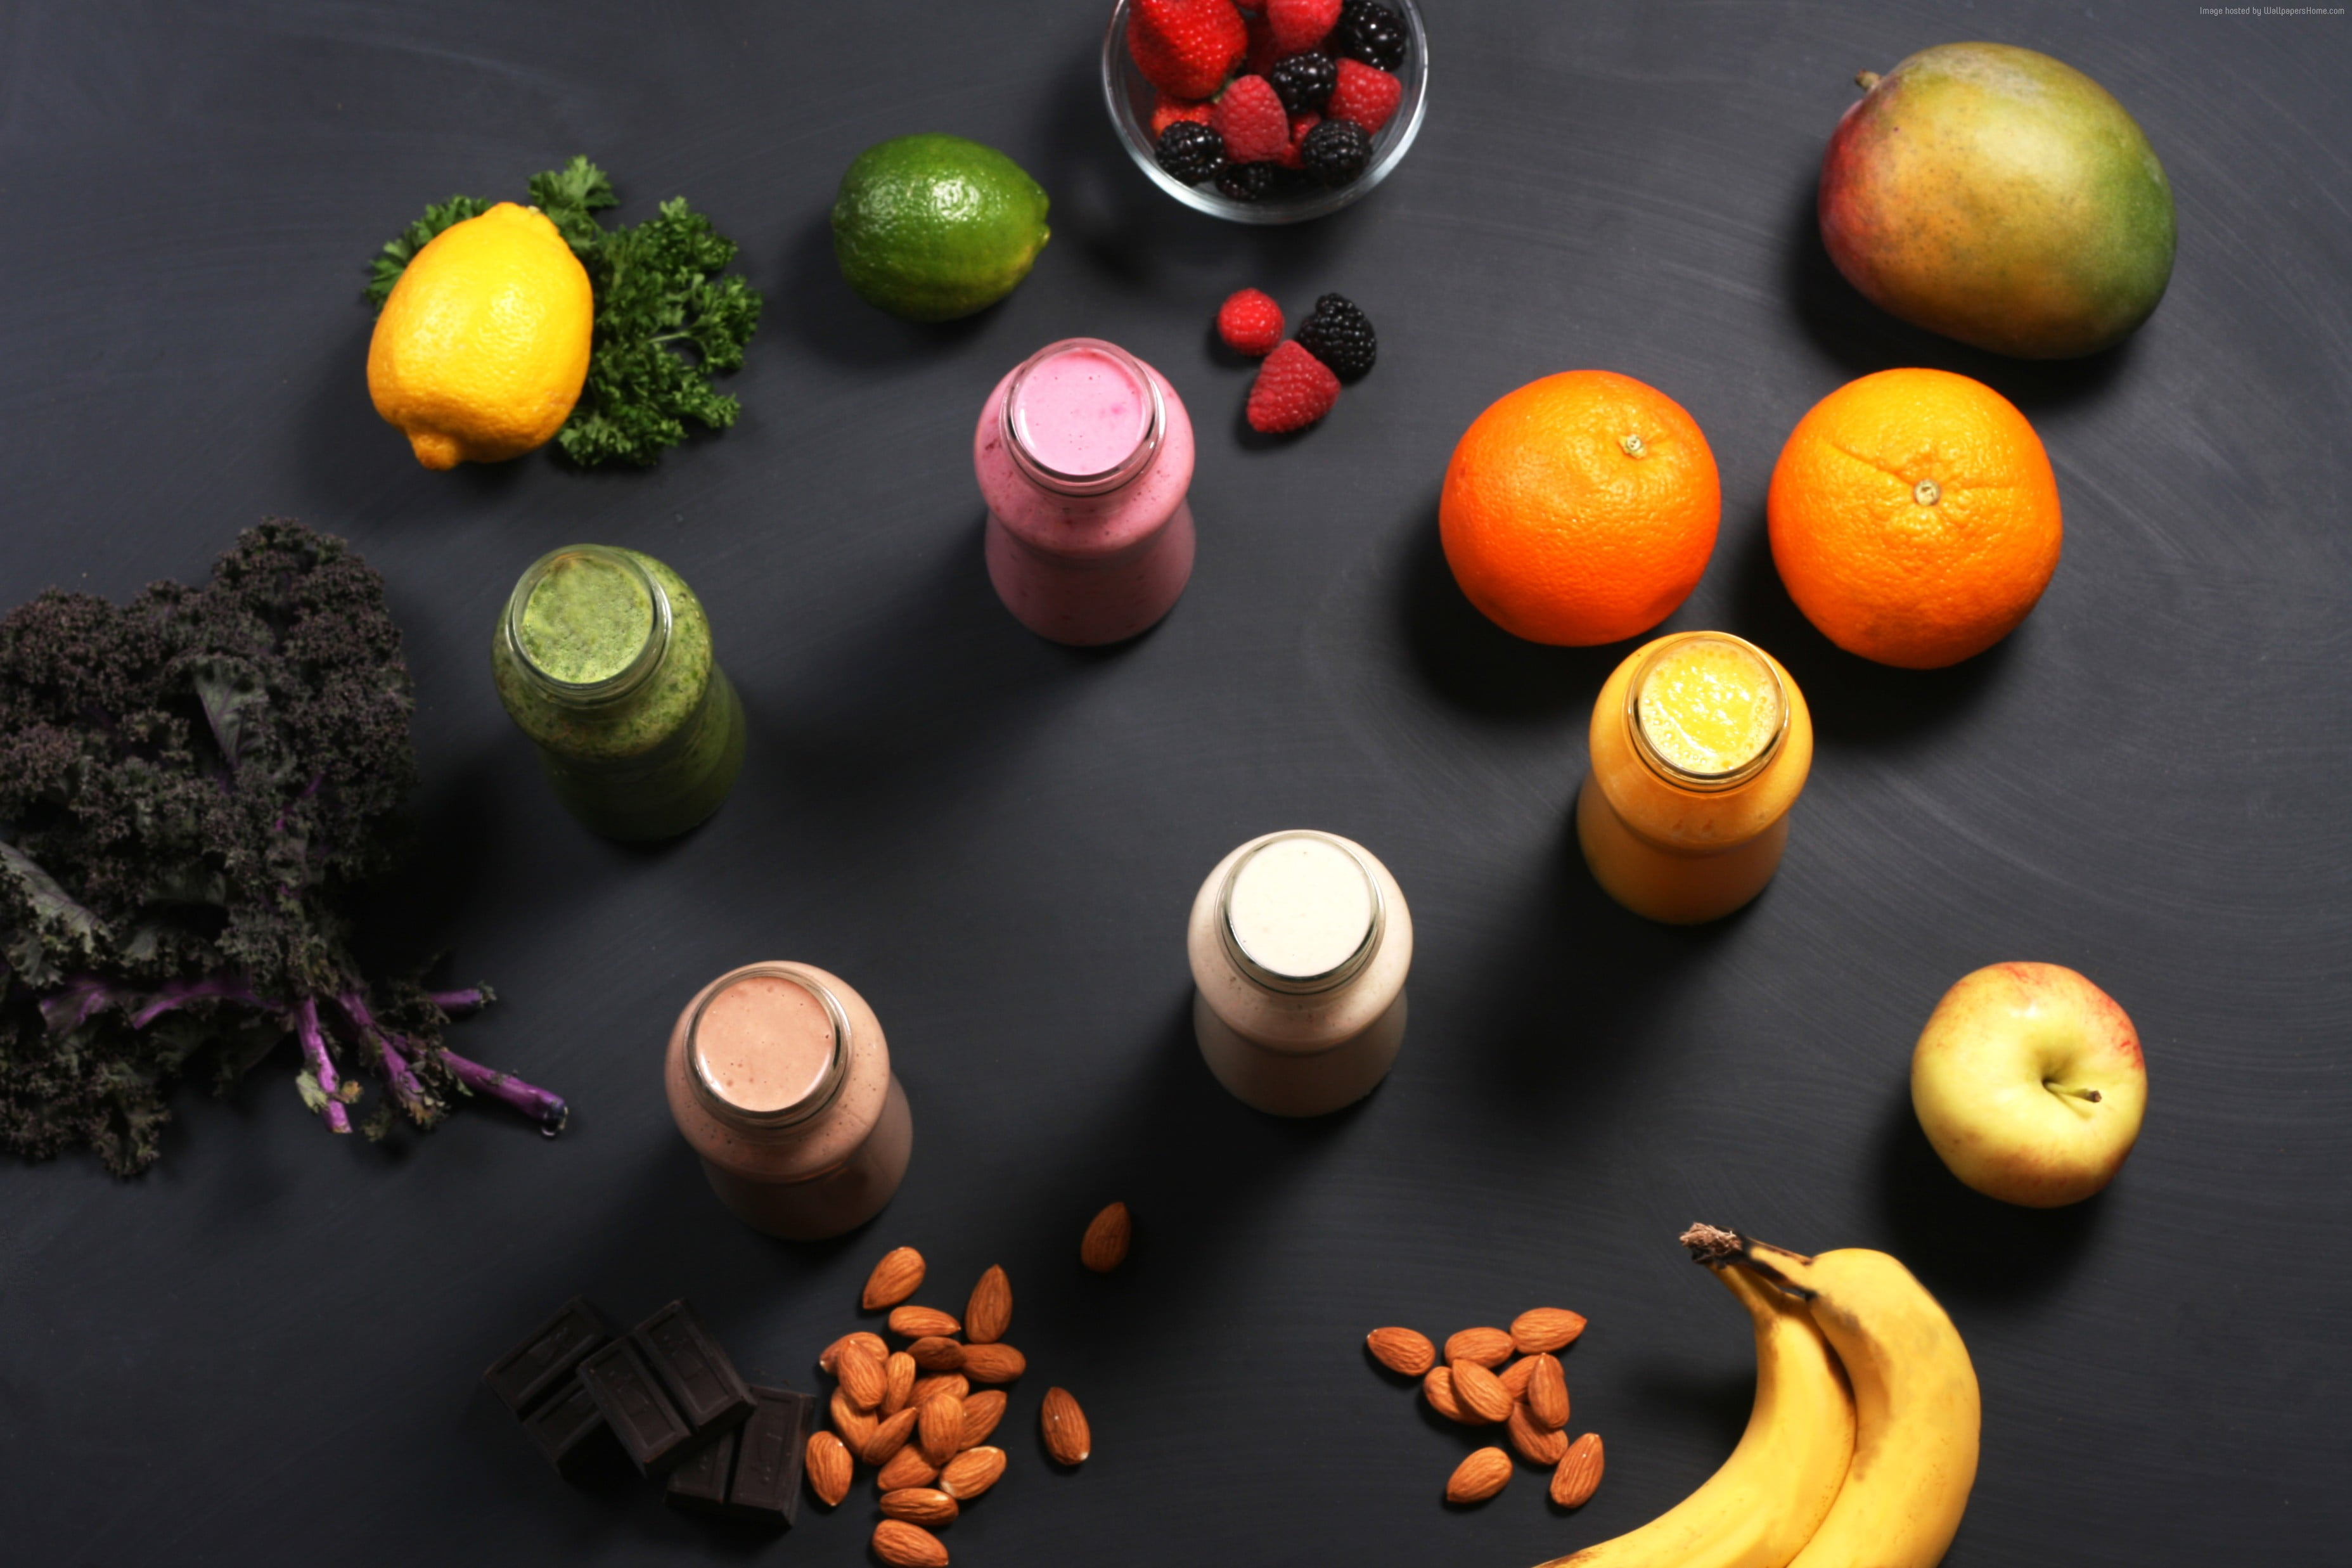 Several assorted fruits on black surface HD wallpaper | Wallpaper Flare